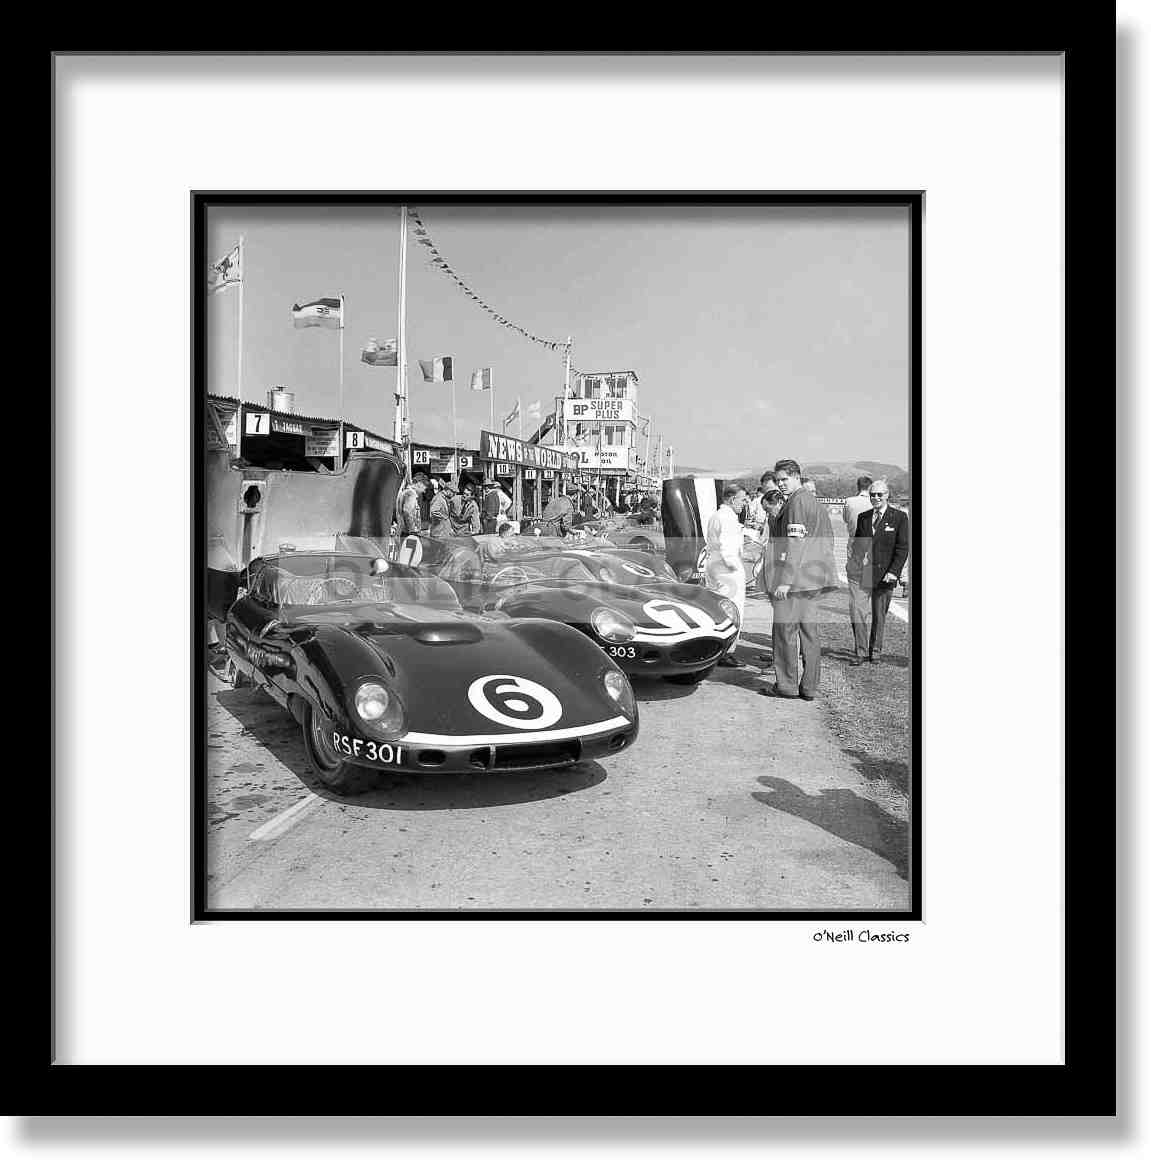 Motor Racing meeting at Goodwood, Sussex - Framed B&W photograph